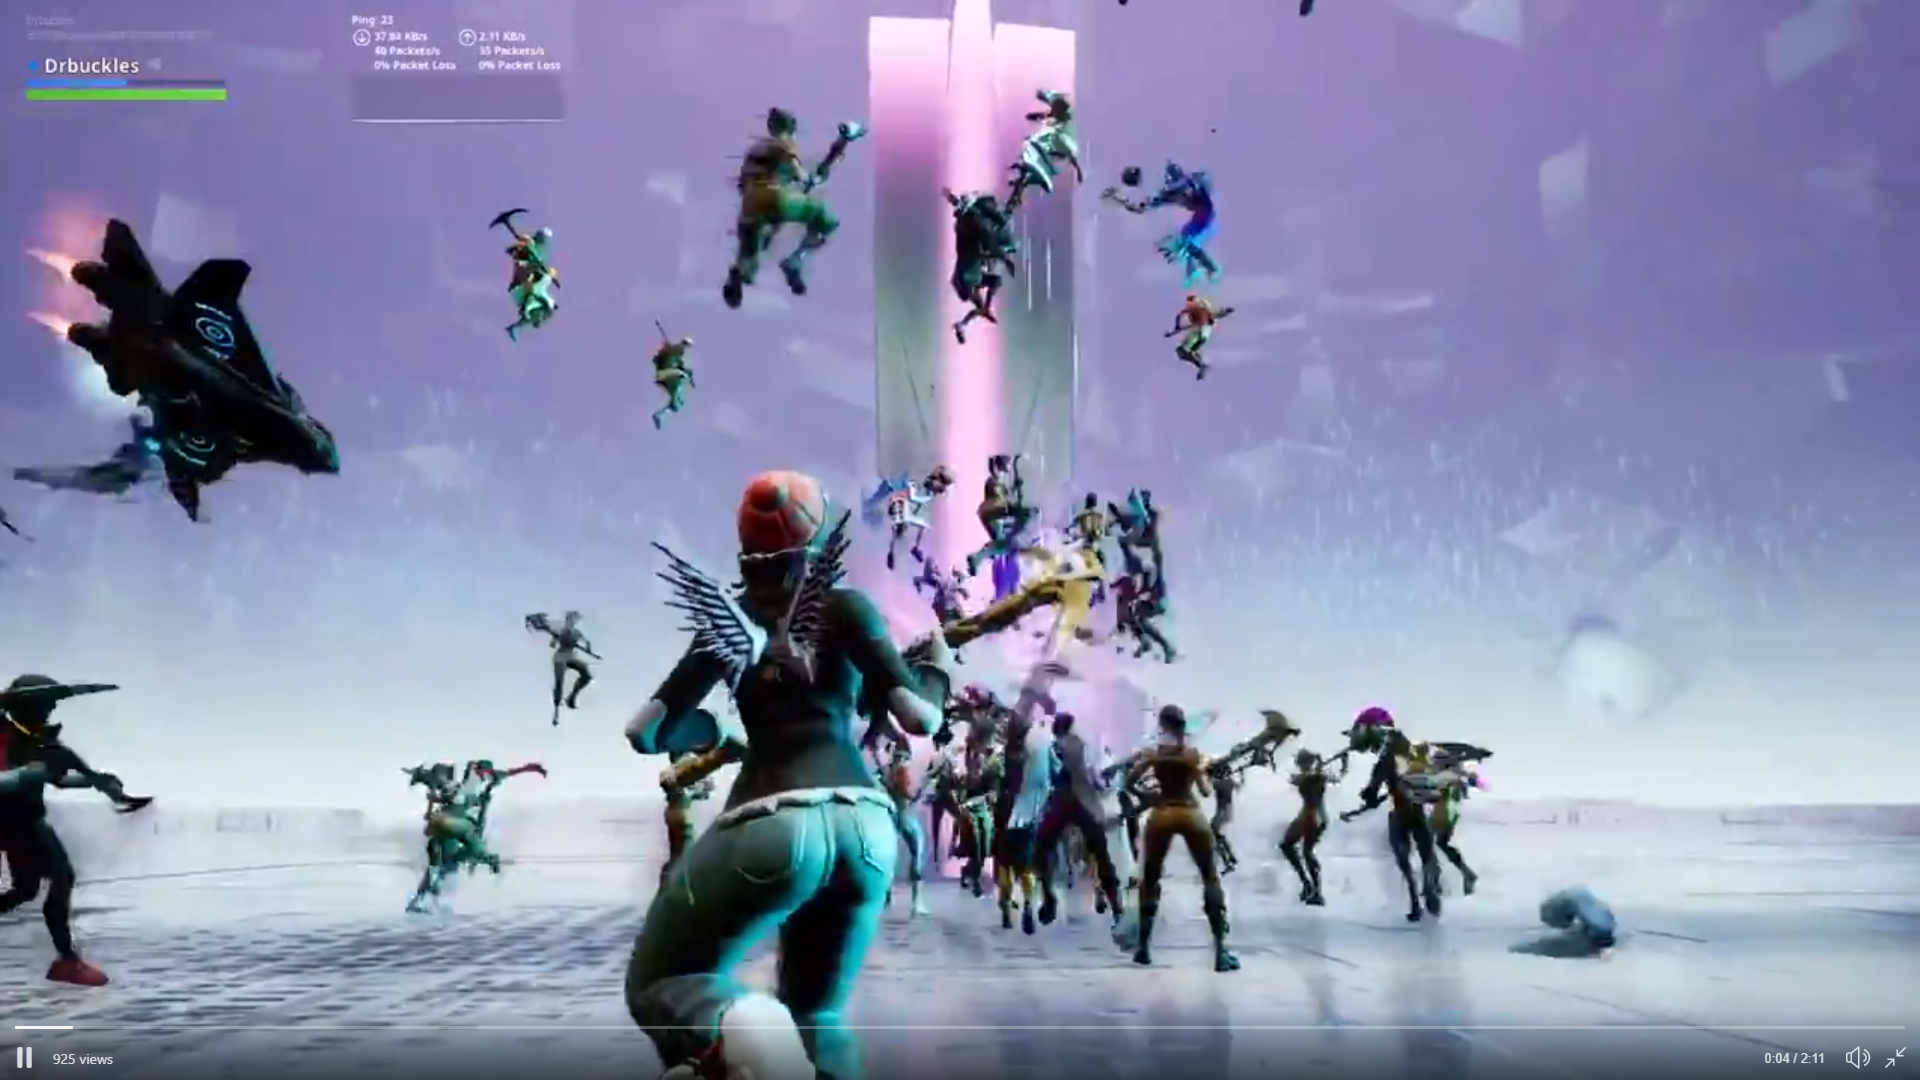 Fortnite Season 9 Teaser Images Tease That Neo Tilted Towers May Be